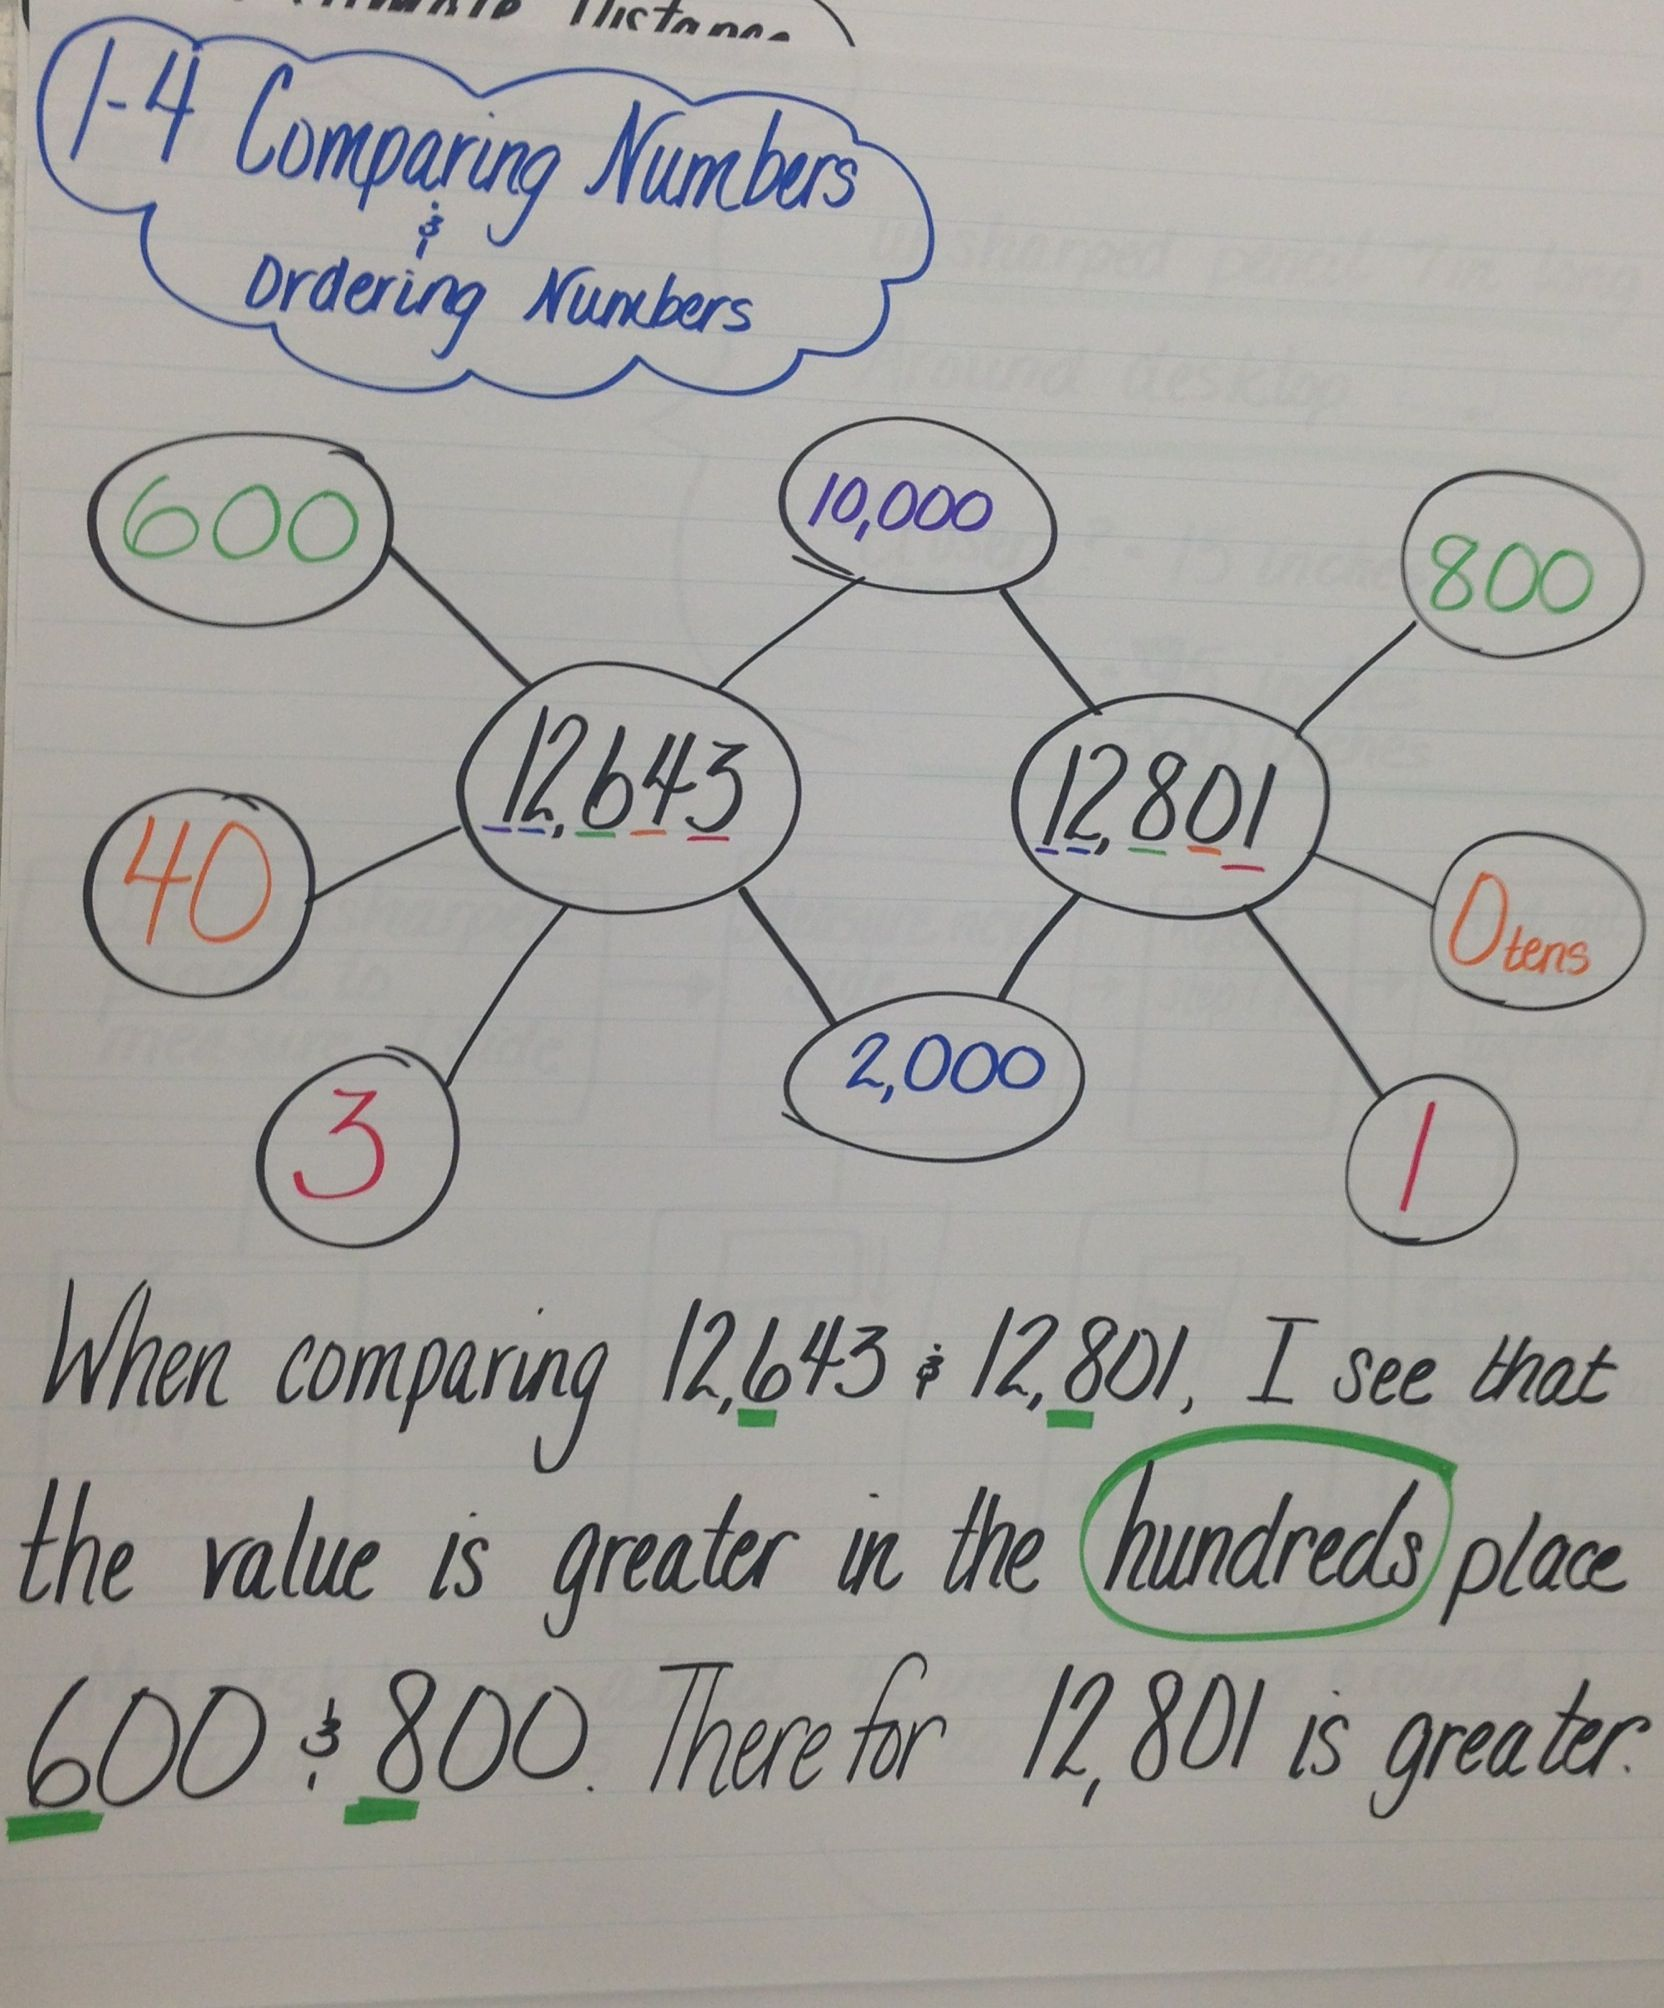 1 4 Comparing Numbers Double Bubble Map